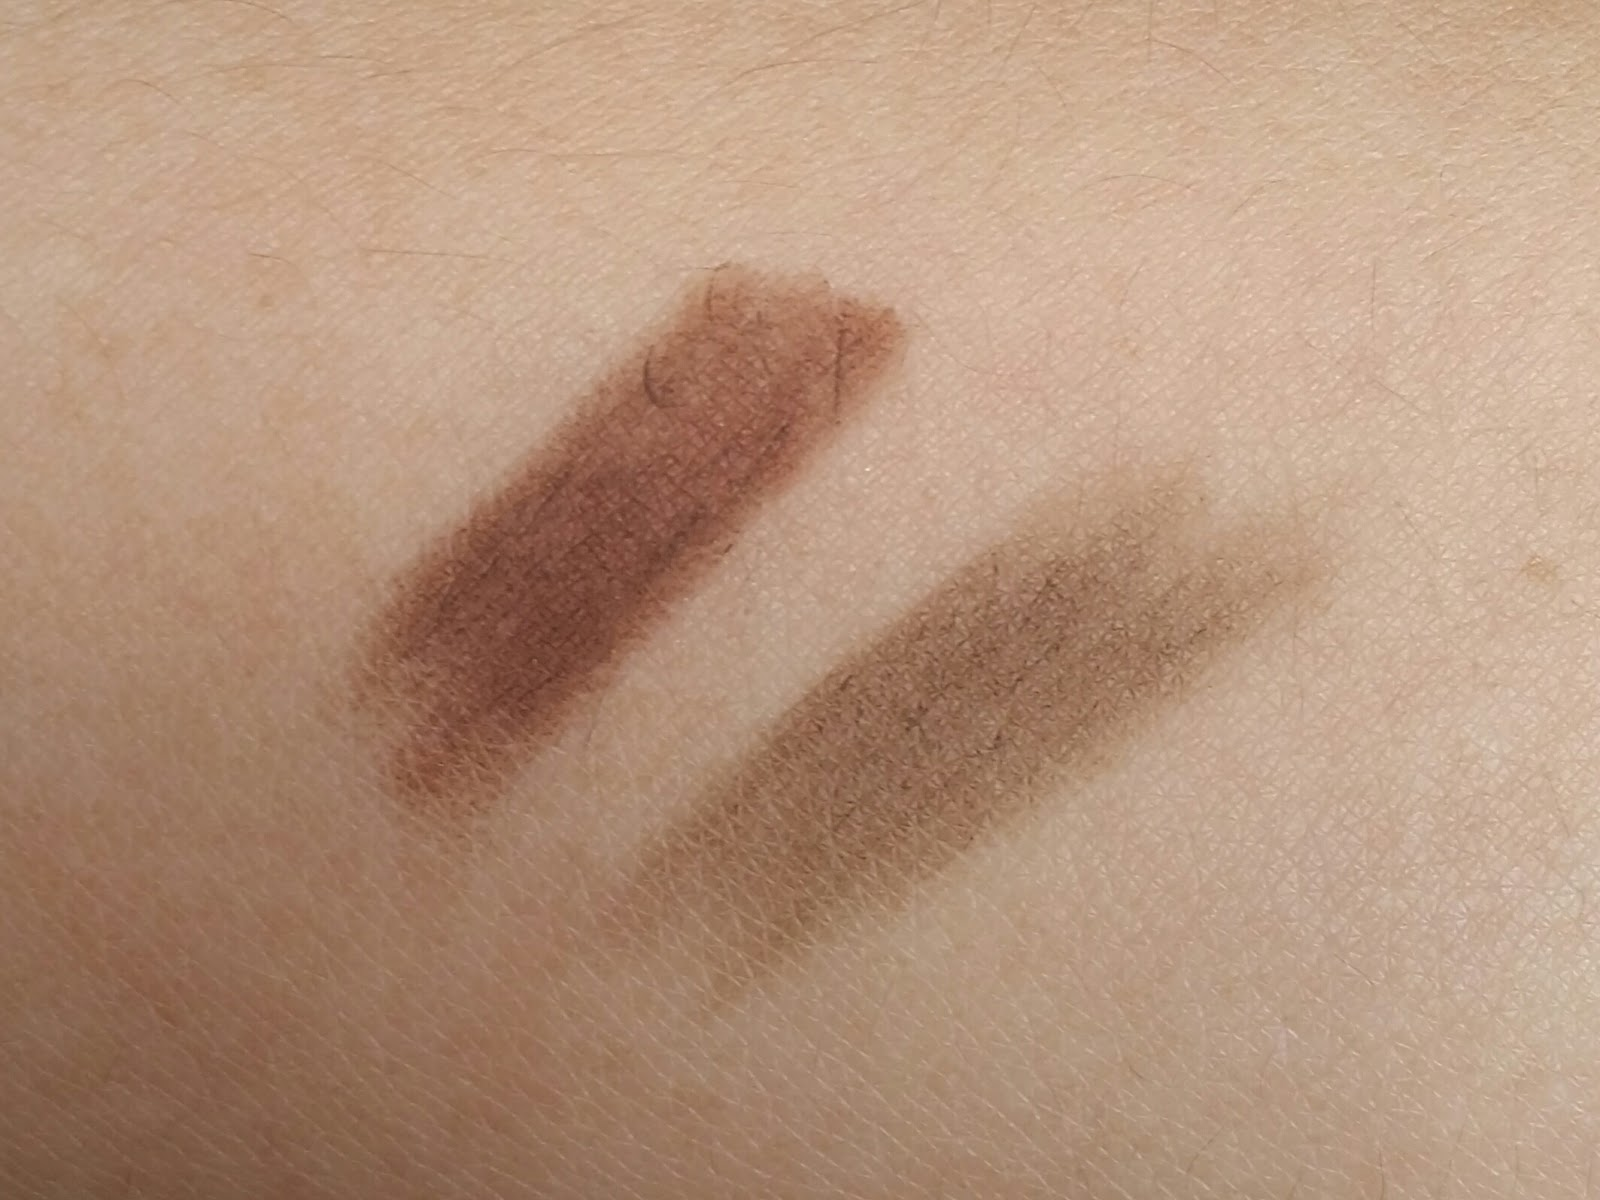 eyebrow shading drawing. swatch on the right is etude house drawing eyebrow pencil in shade 01. shading